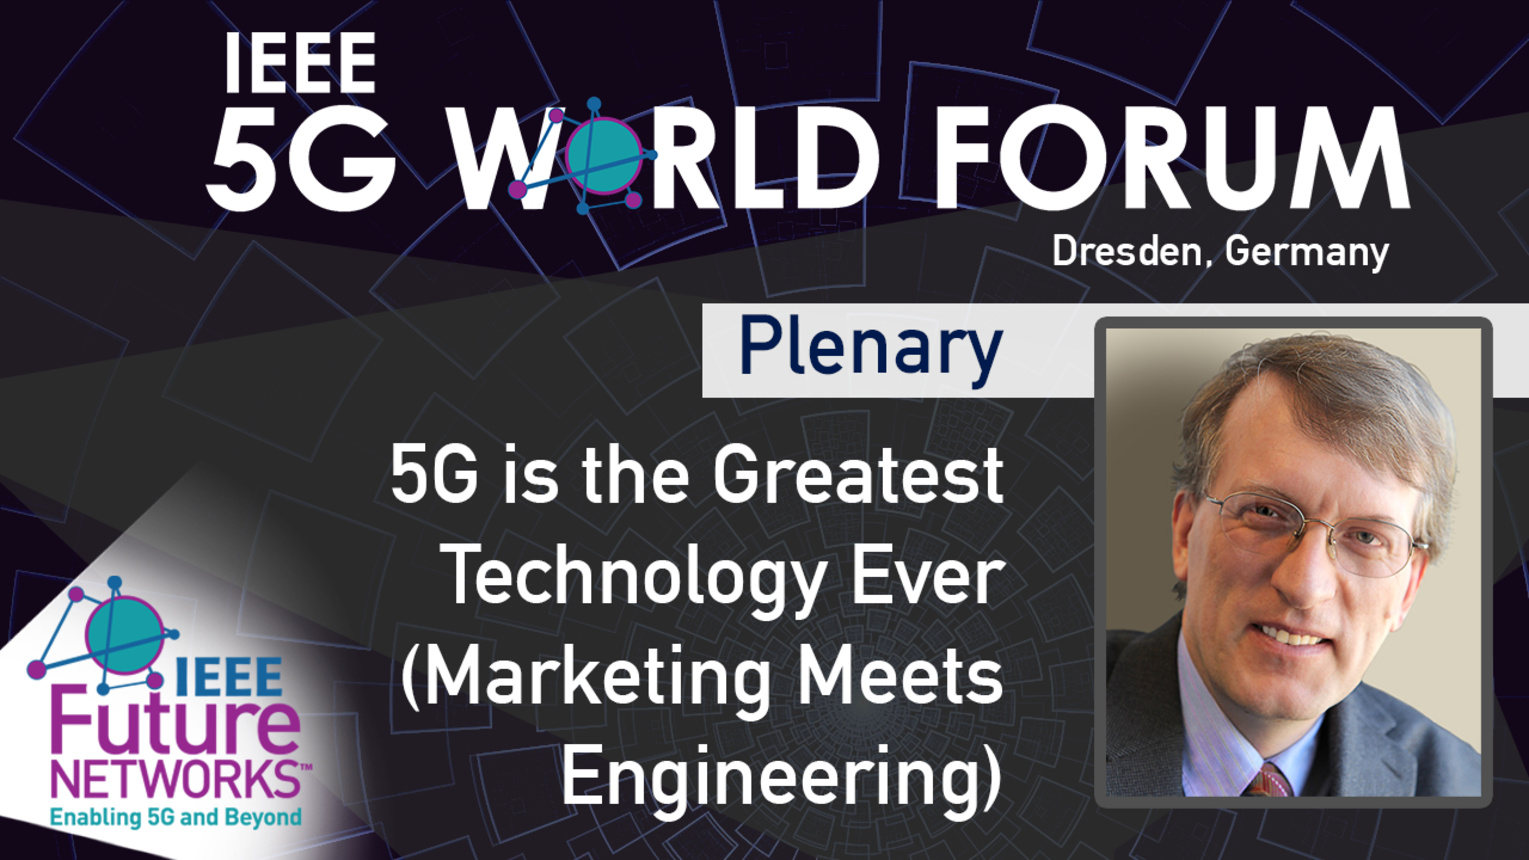 5G is the Greatest Technology Ever (Marketing Meets Engineering) - Henning Schulzrinne - 5G World Forum Dresden, 2019